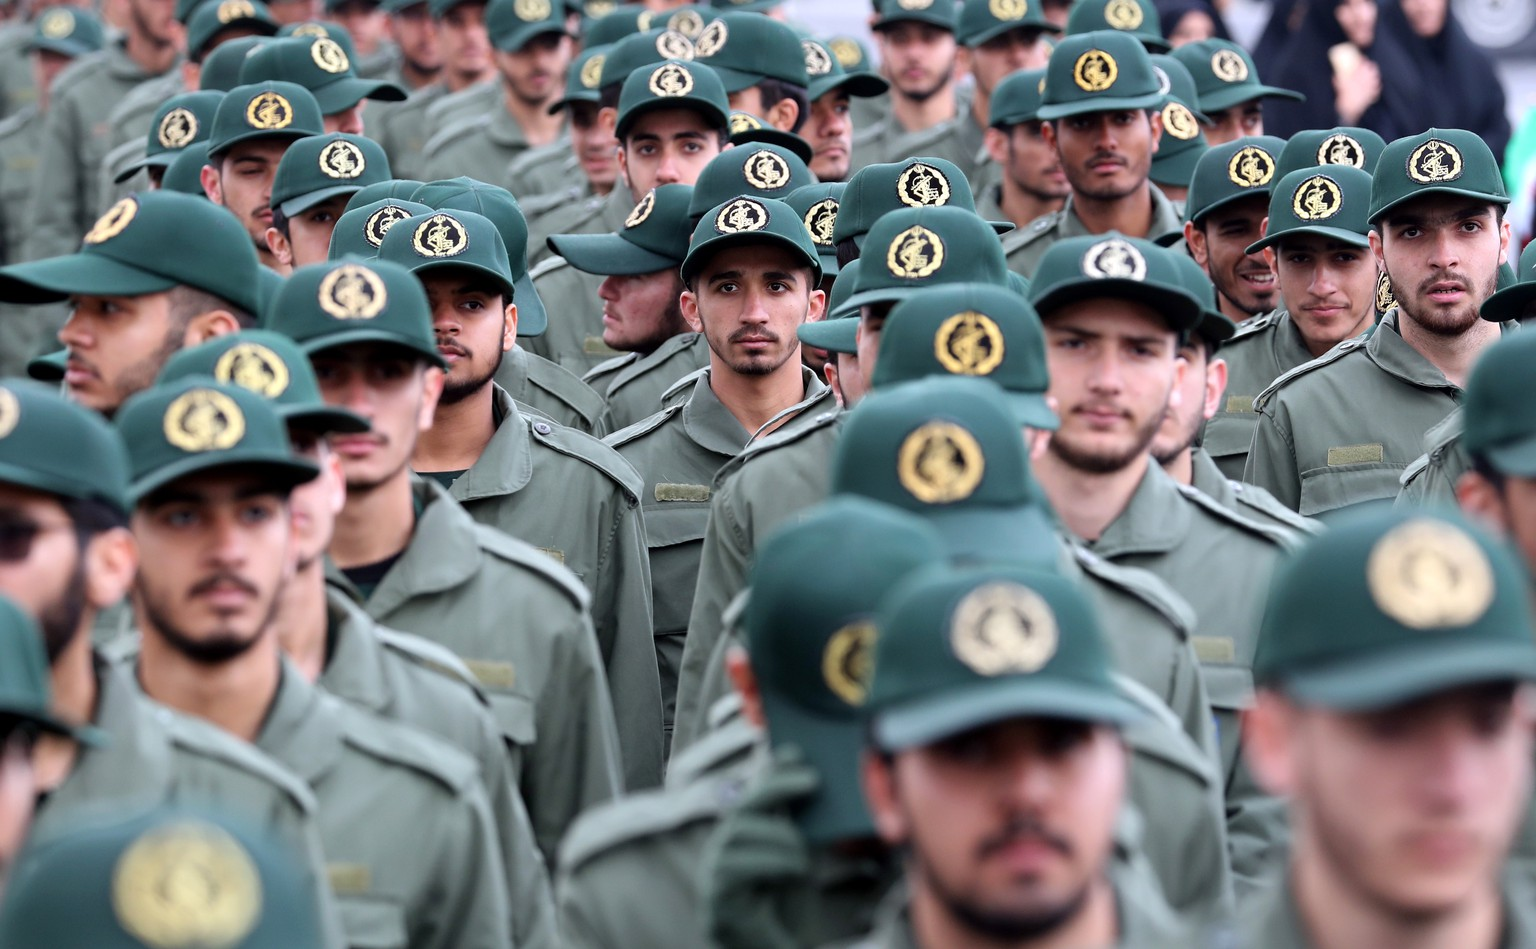 epa07367776 (FILE) - Members of Iranian revolutionary guards corps (IRGC) shout slogans during a ceremony marking the 40th anniversary of the 1979 Islamic revolution, at the Azadi (Freedom) square in Tehran, Iran, 11 February 2019 (Reissued 13 February 2019). According to IRGC official website (Sepahnews), a bombing that targeted a bus carrying members of Iran's Revolutionary Guard in the country's far southeast has killed at least 27 and injured 13.  EPA/ABEDIN TAHERKENAREH